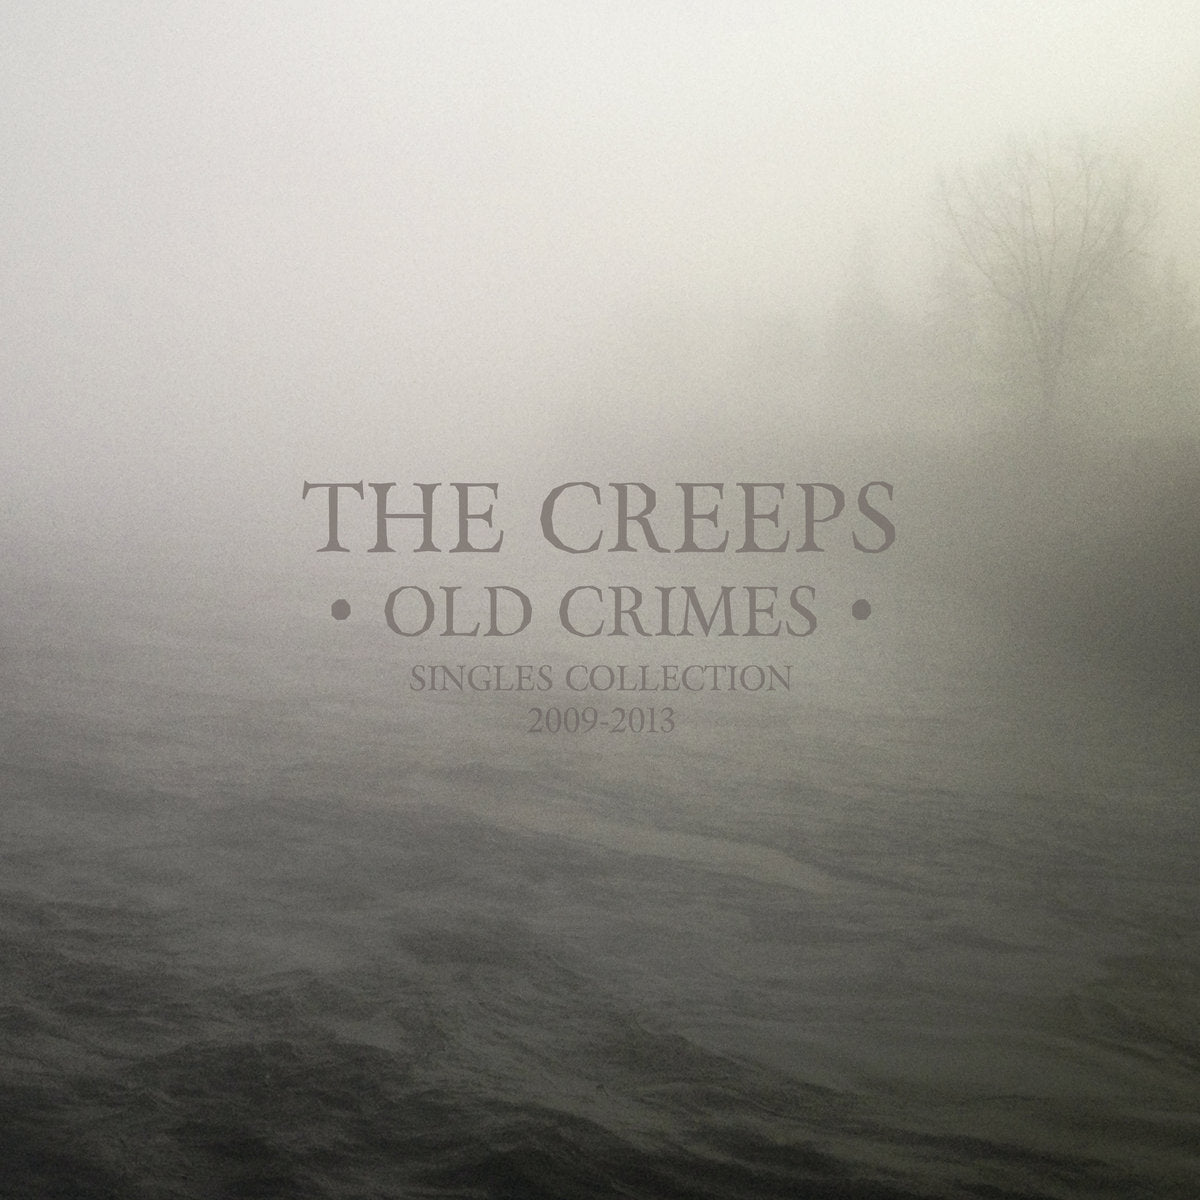 Creeps, The - Old Crimes Singles Collection 2009-2013 - LP